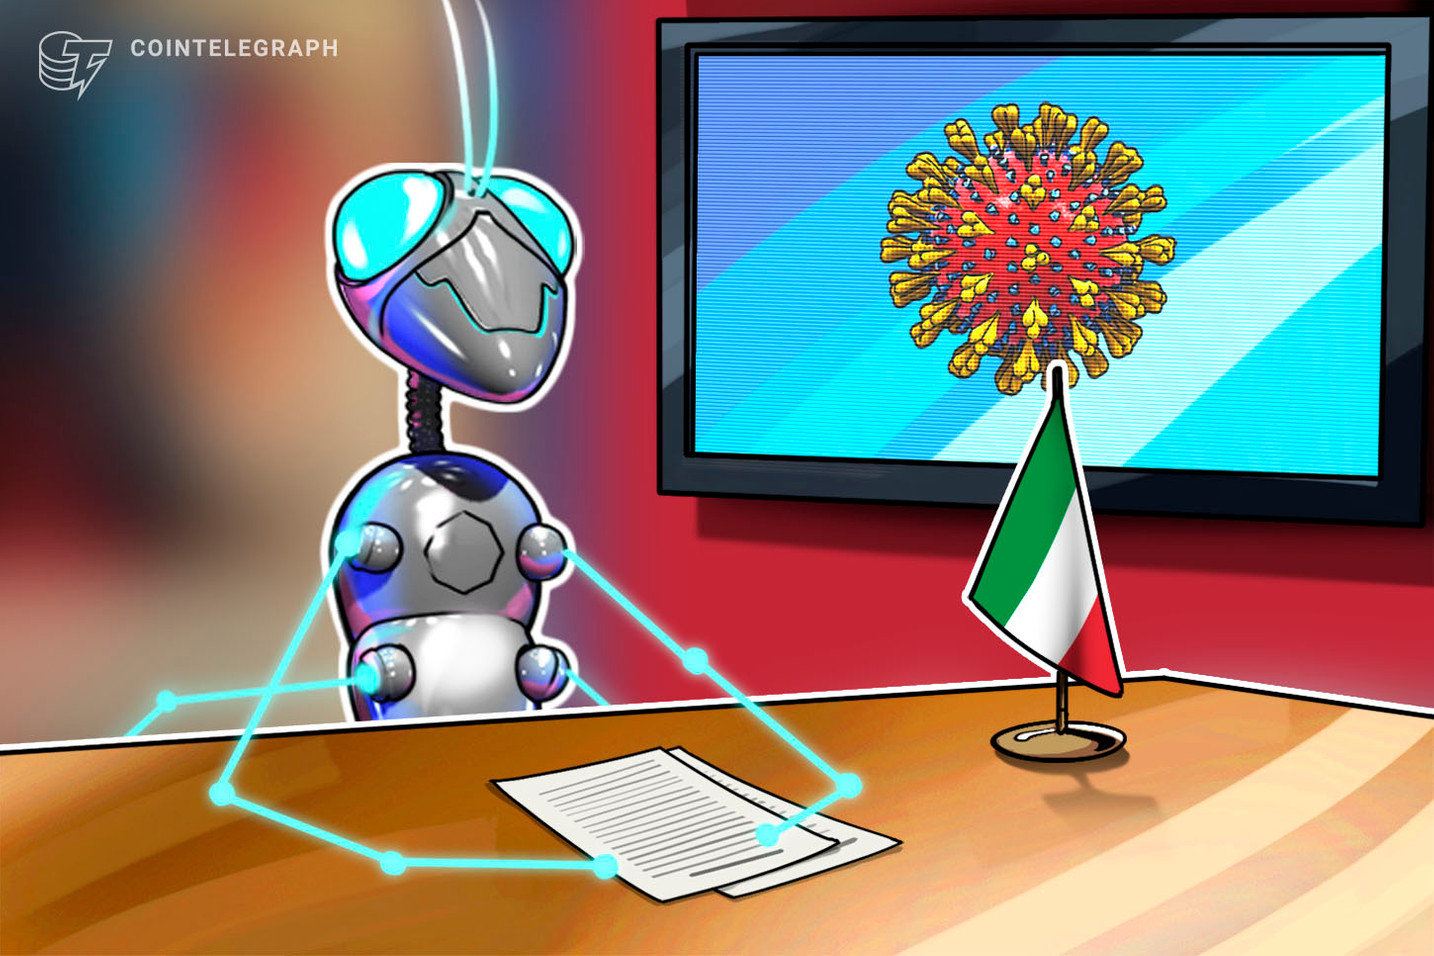 Italy's Top News Agency Uses Blockchain to Fight Fake Coronavirus News